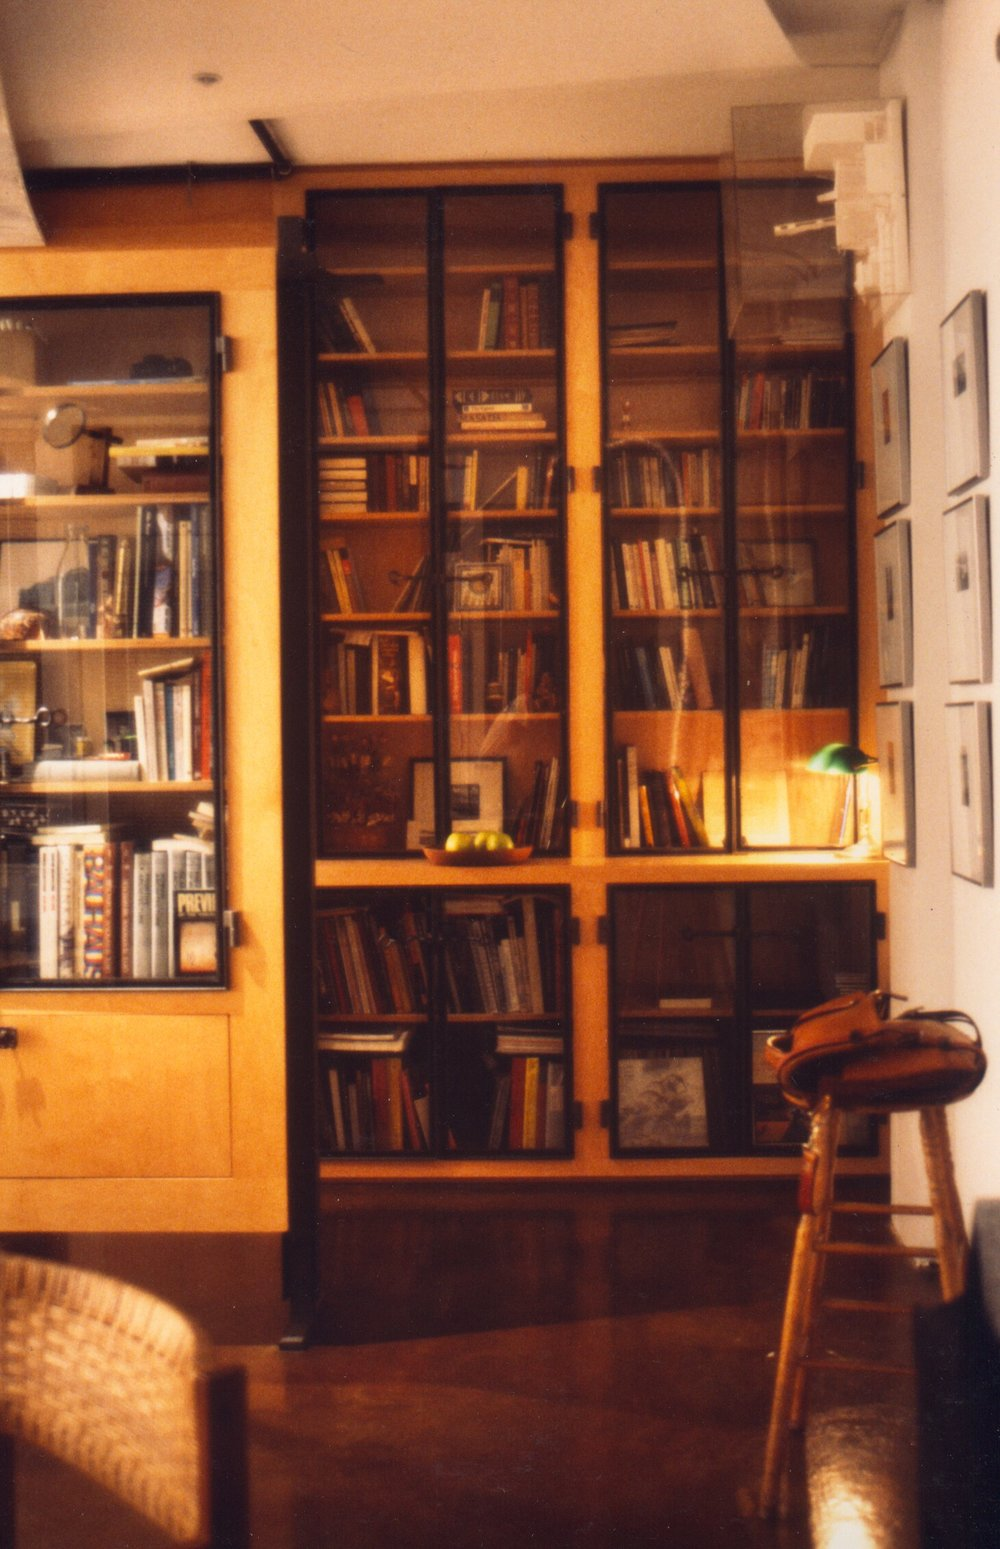 View of Kitchen Library  Exhibit Wall.jpg